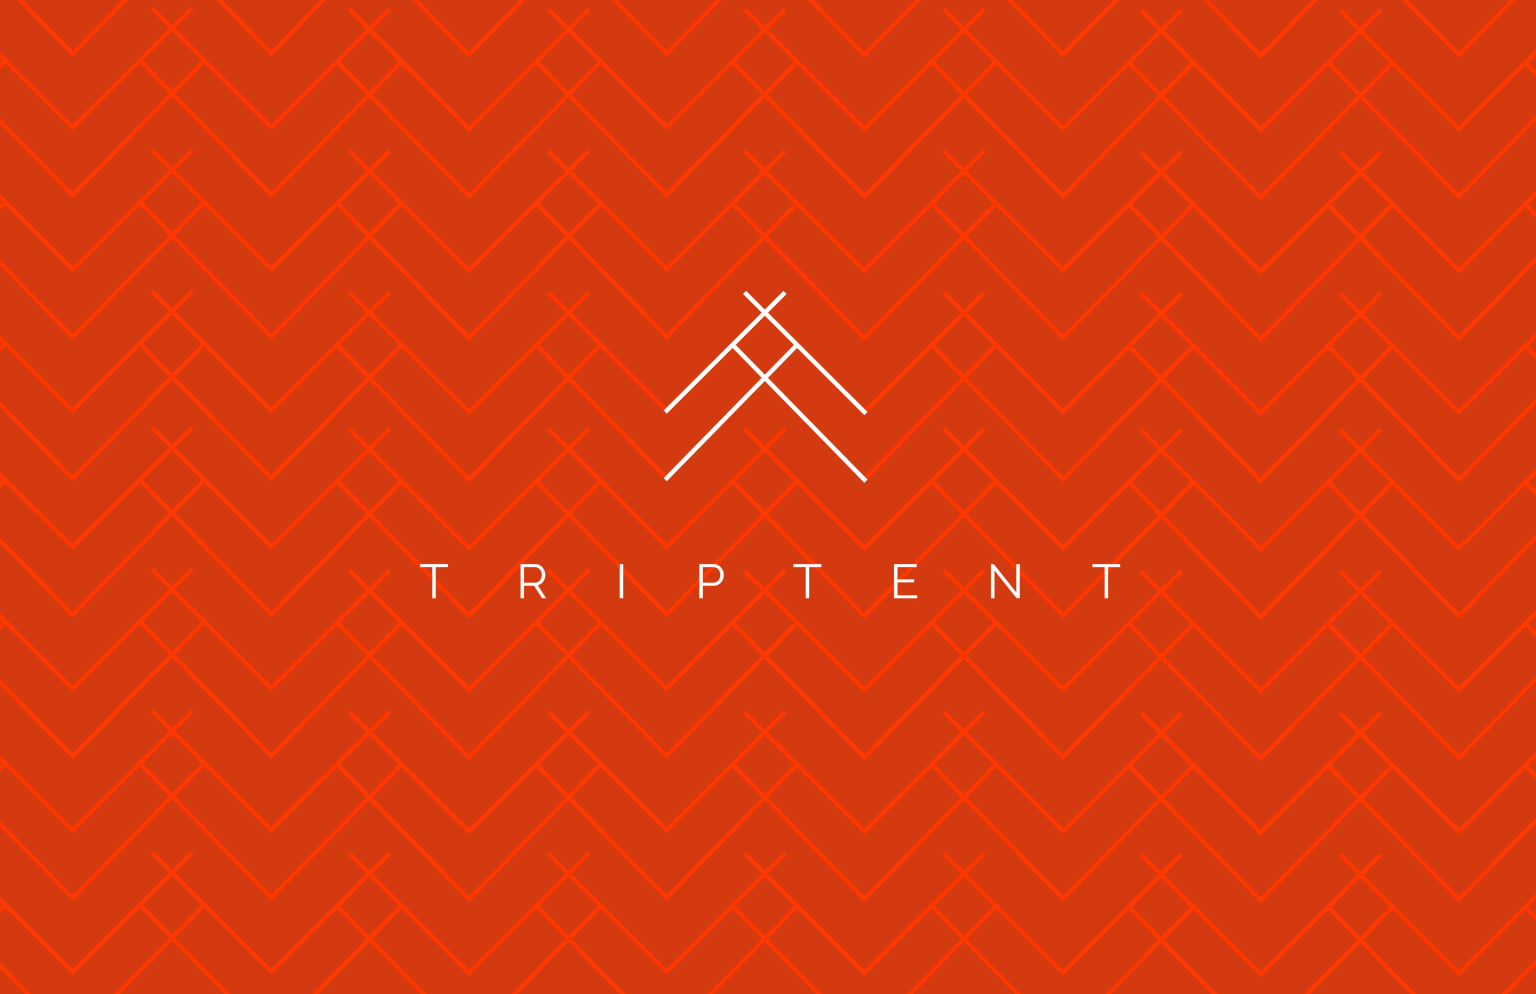 Triptent: An Agency Re-Brand